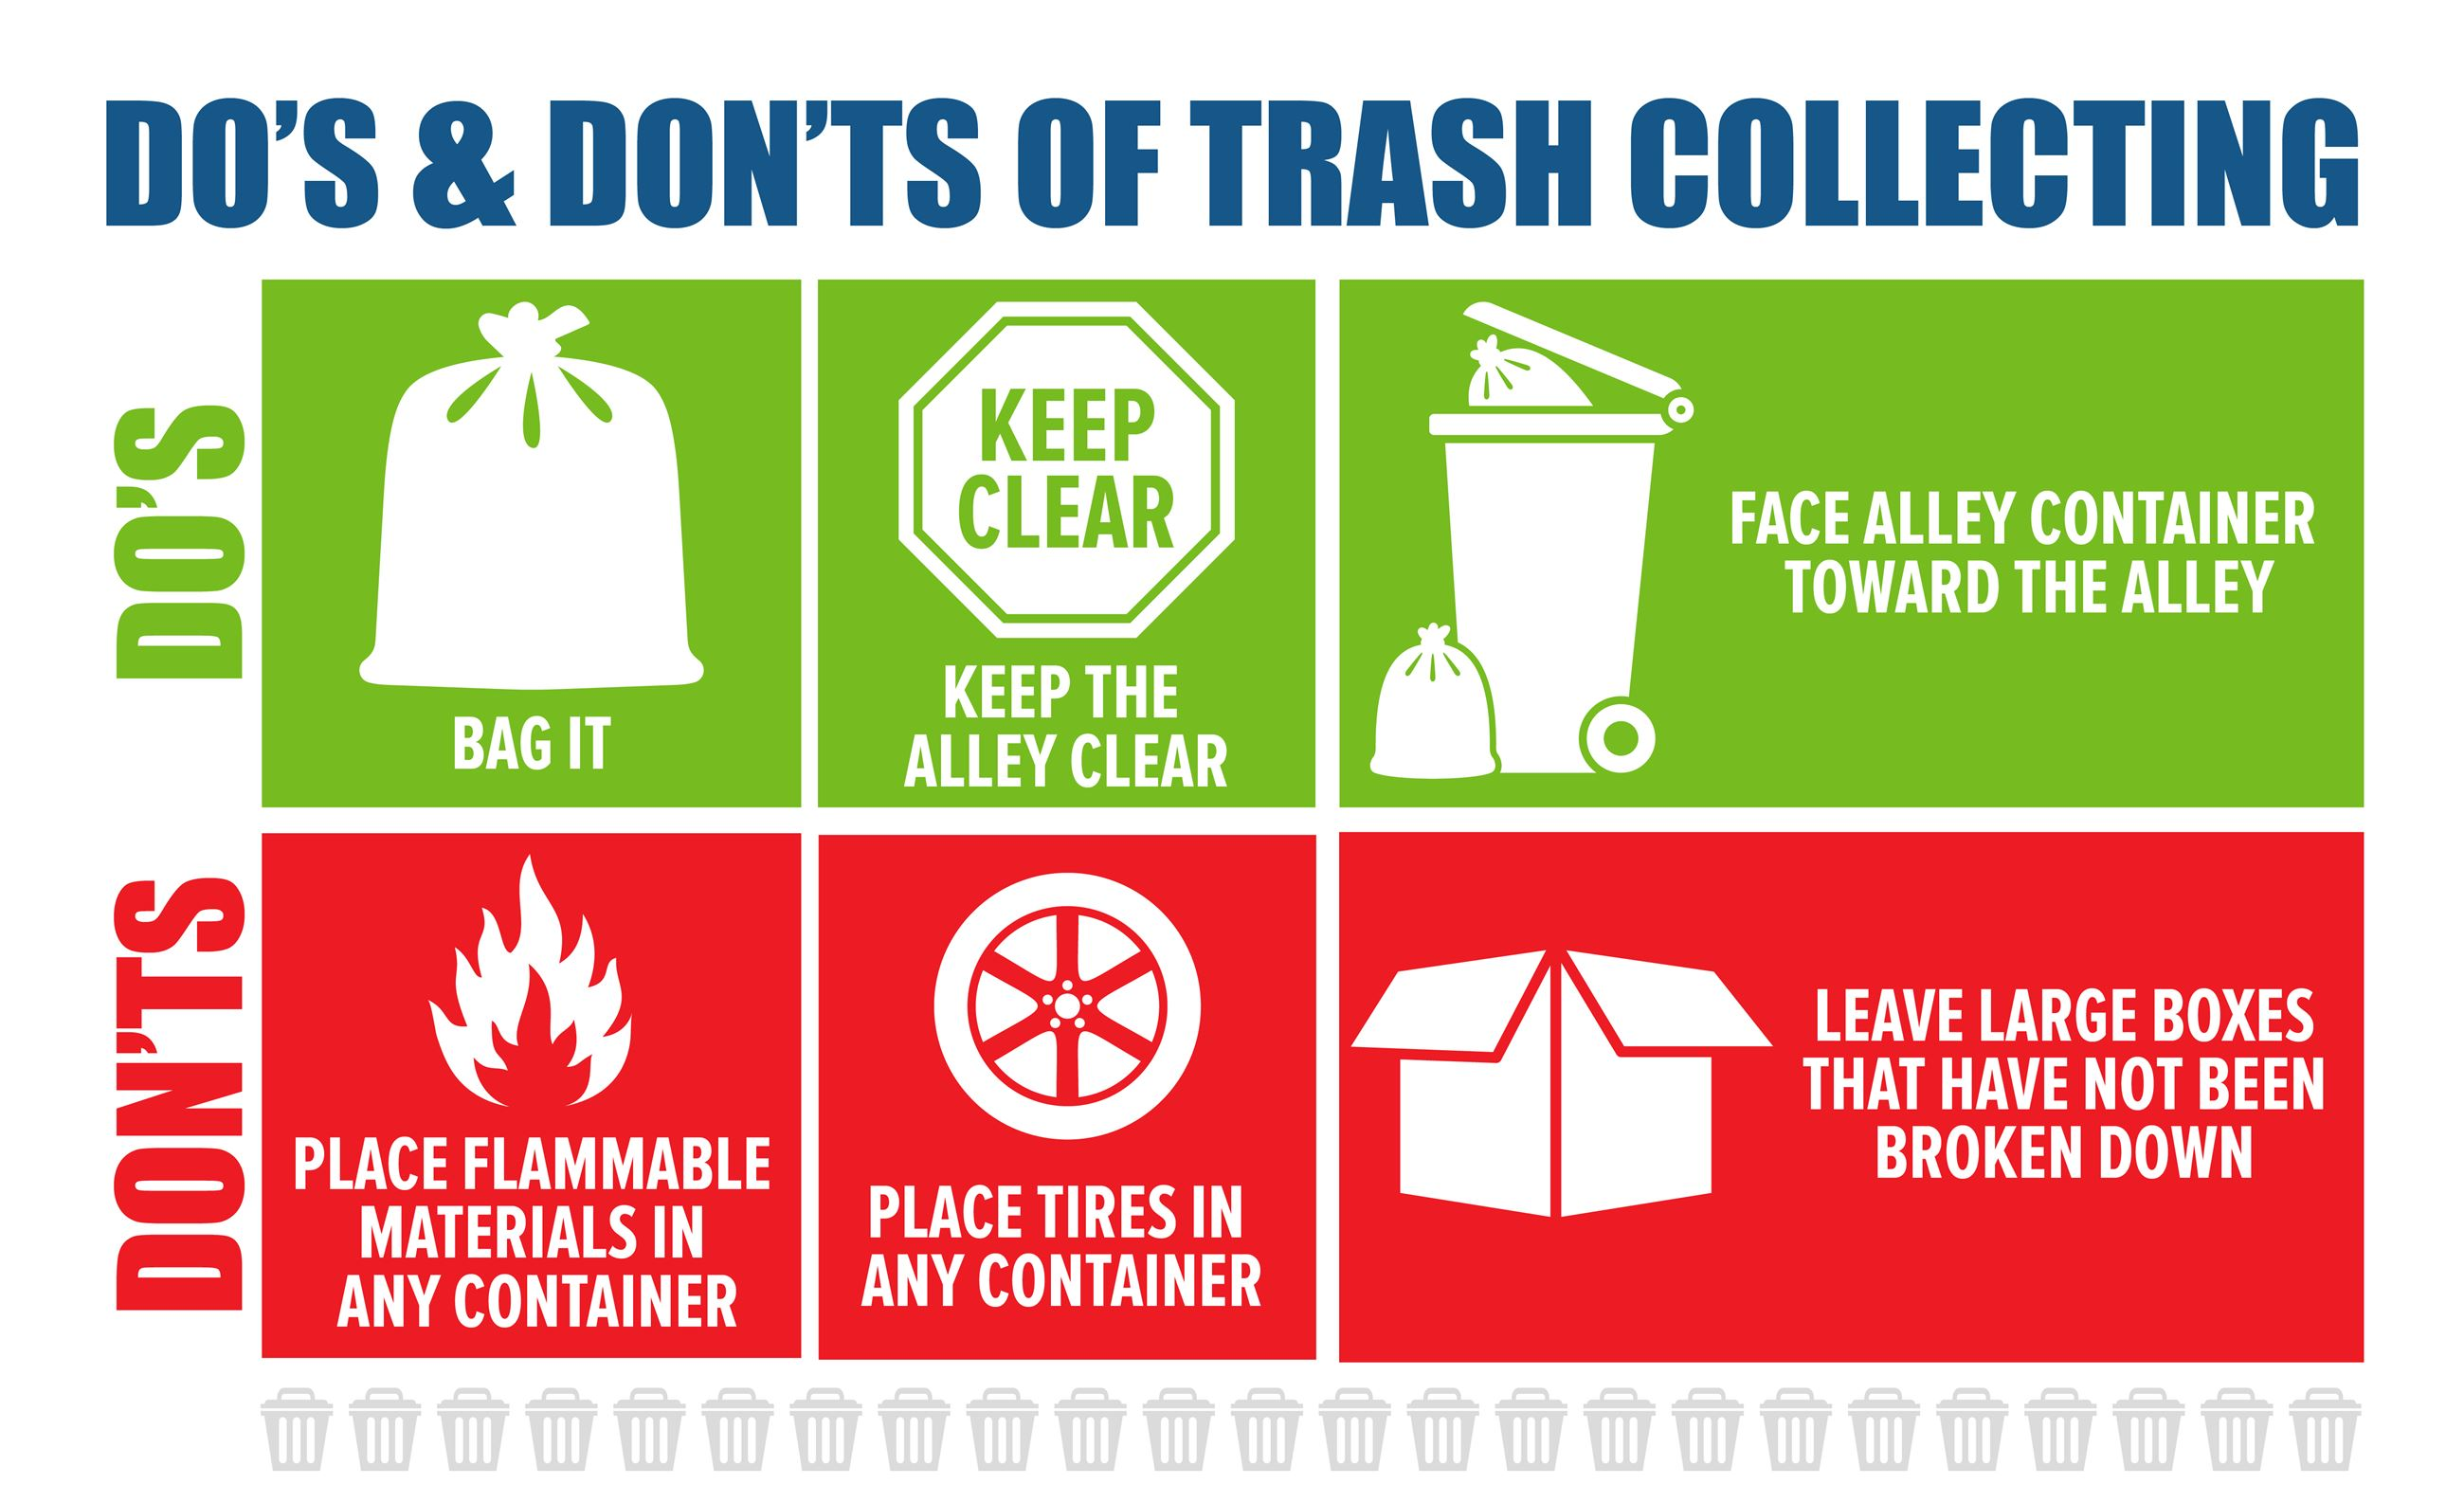 Infographic on the Dos and Don'ts of Solid Waste